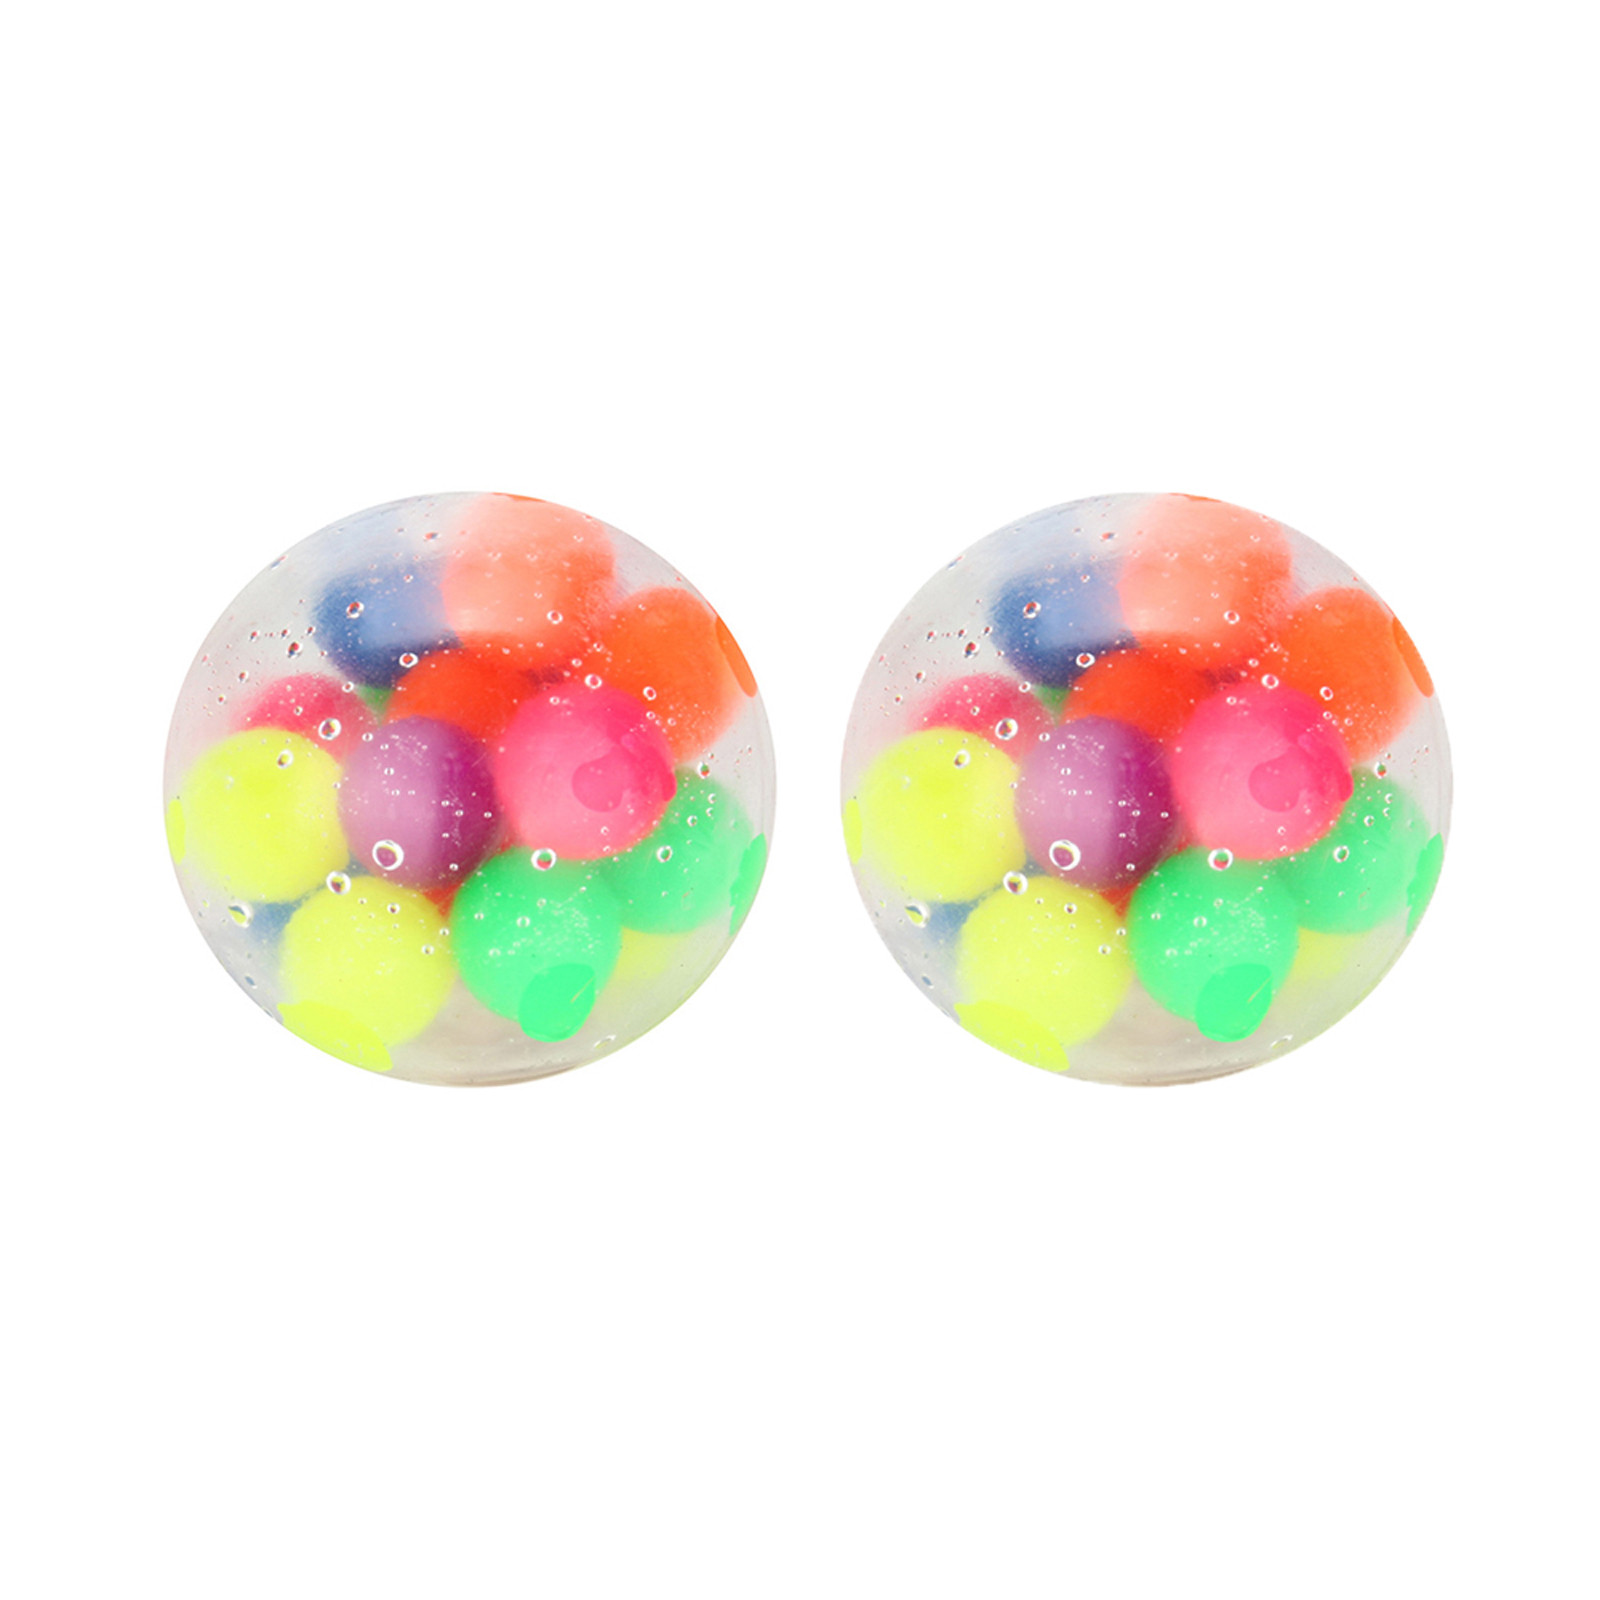 Figet Toys Stress-Ball Popit Pressure-Ball-Stress Reliever Color-Sensory 2PCS Office img2